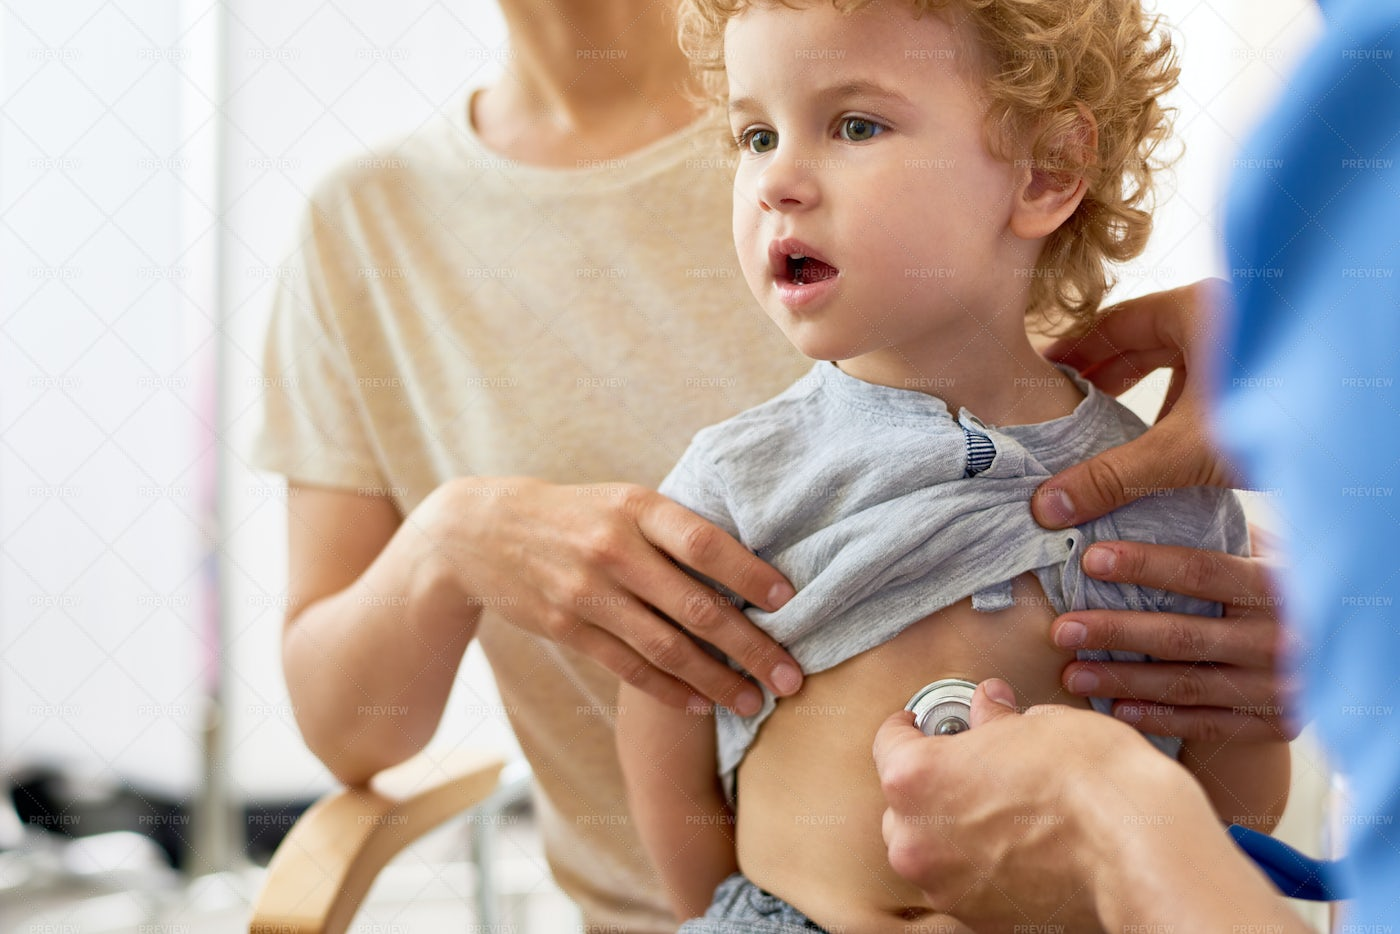 Child Visiting Doctor With Mom: Stock Photos